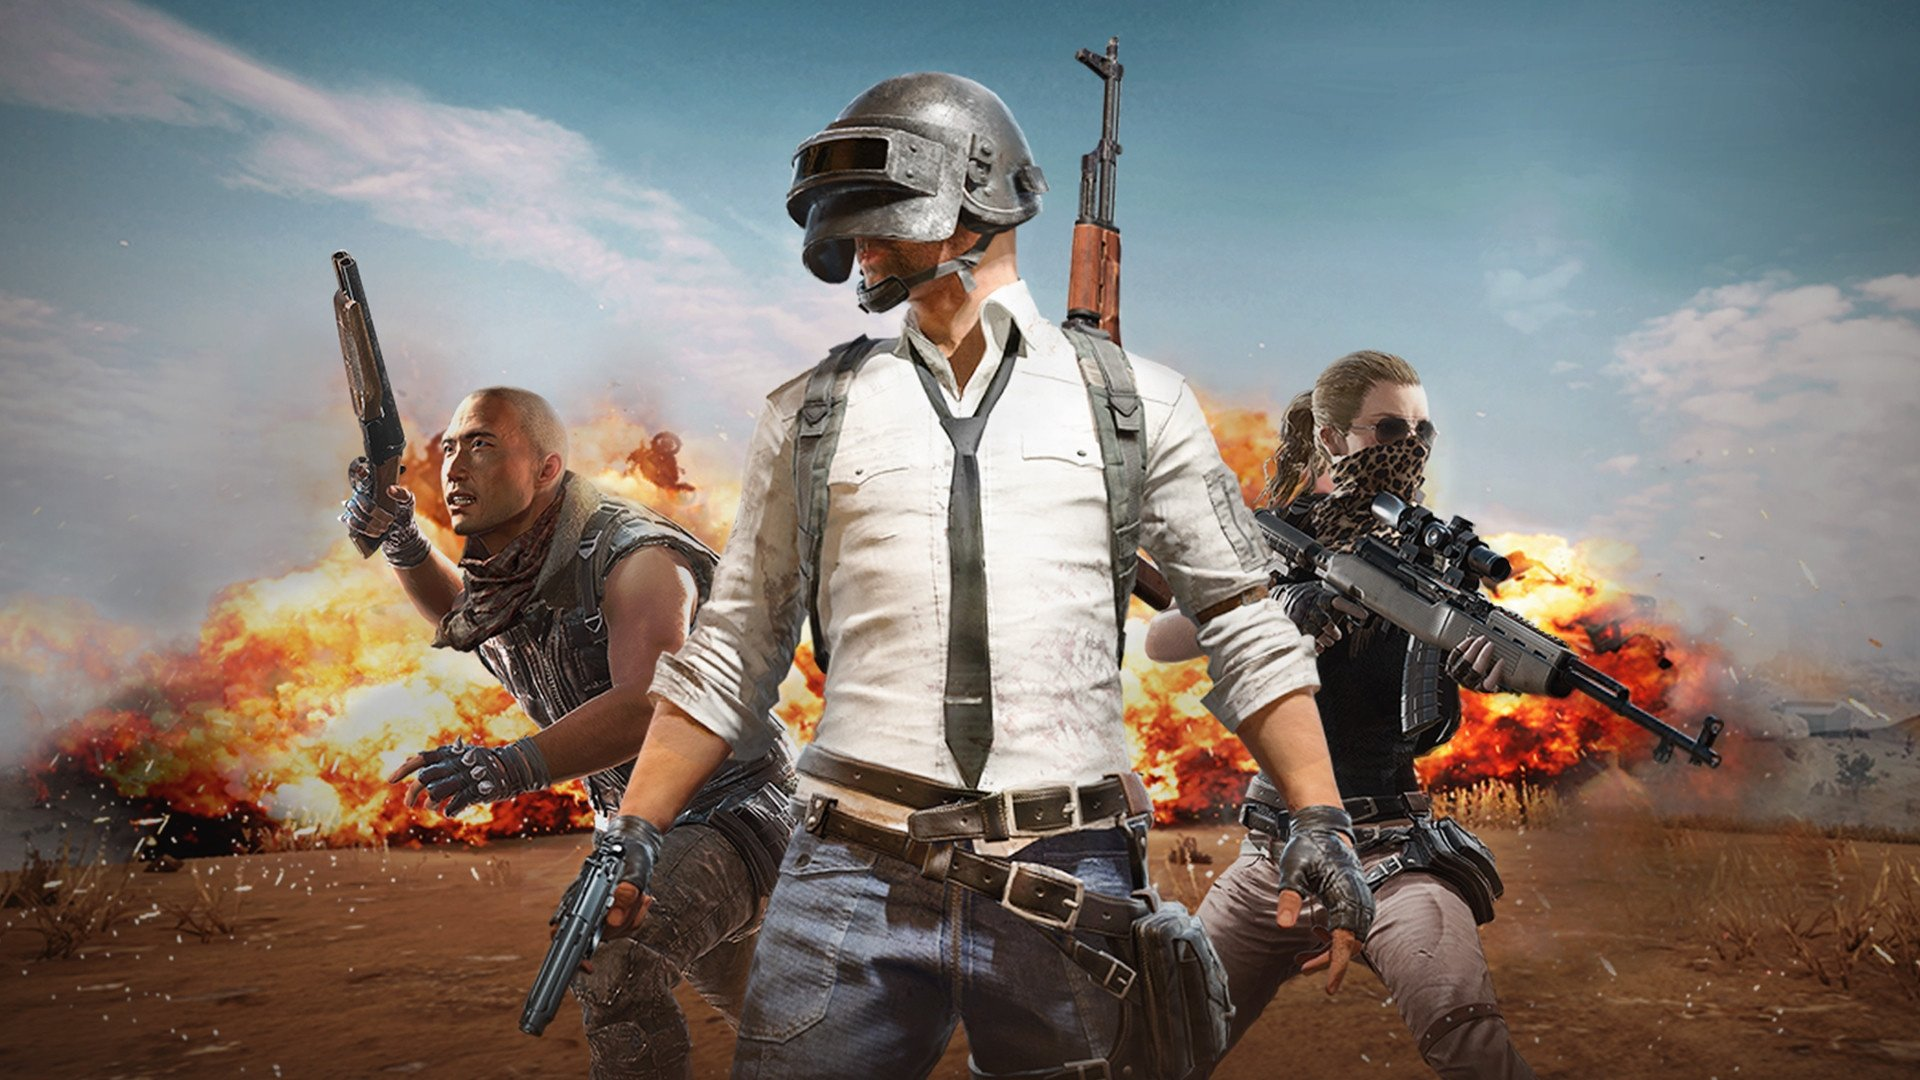 Pubg Girl Hd Wallpaper For Mobile: PlayStation Store Sales Charts: PUBG Earns Itself A